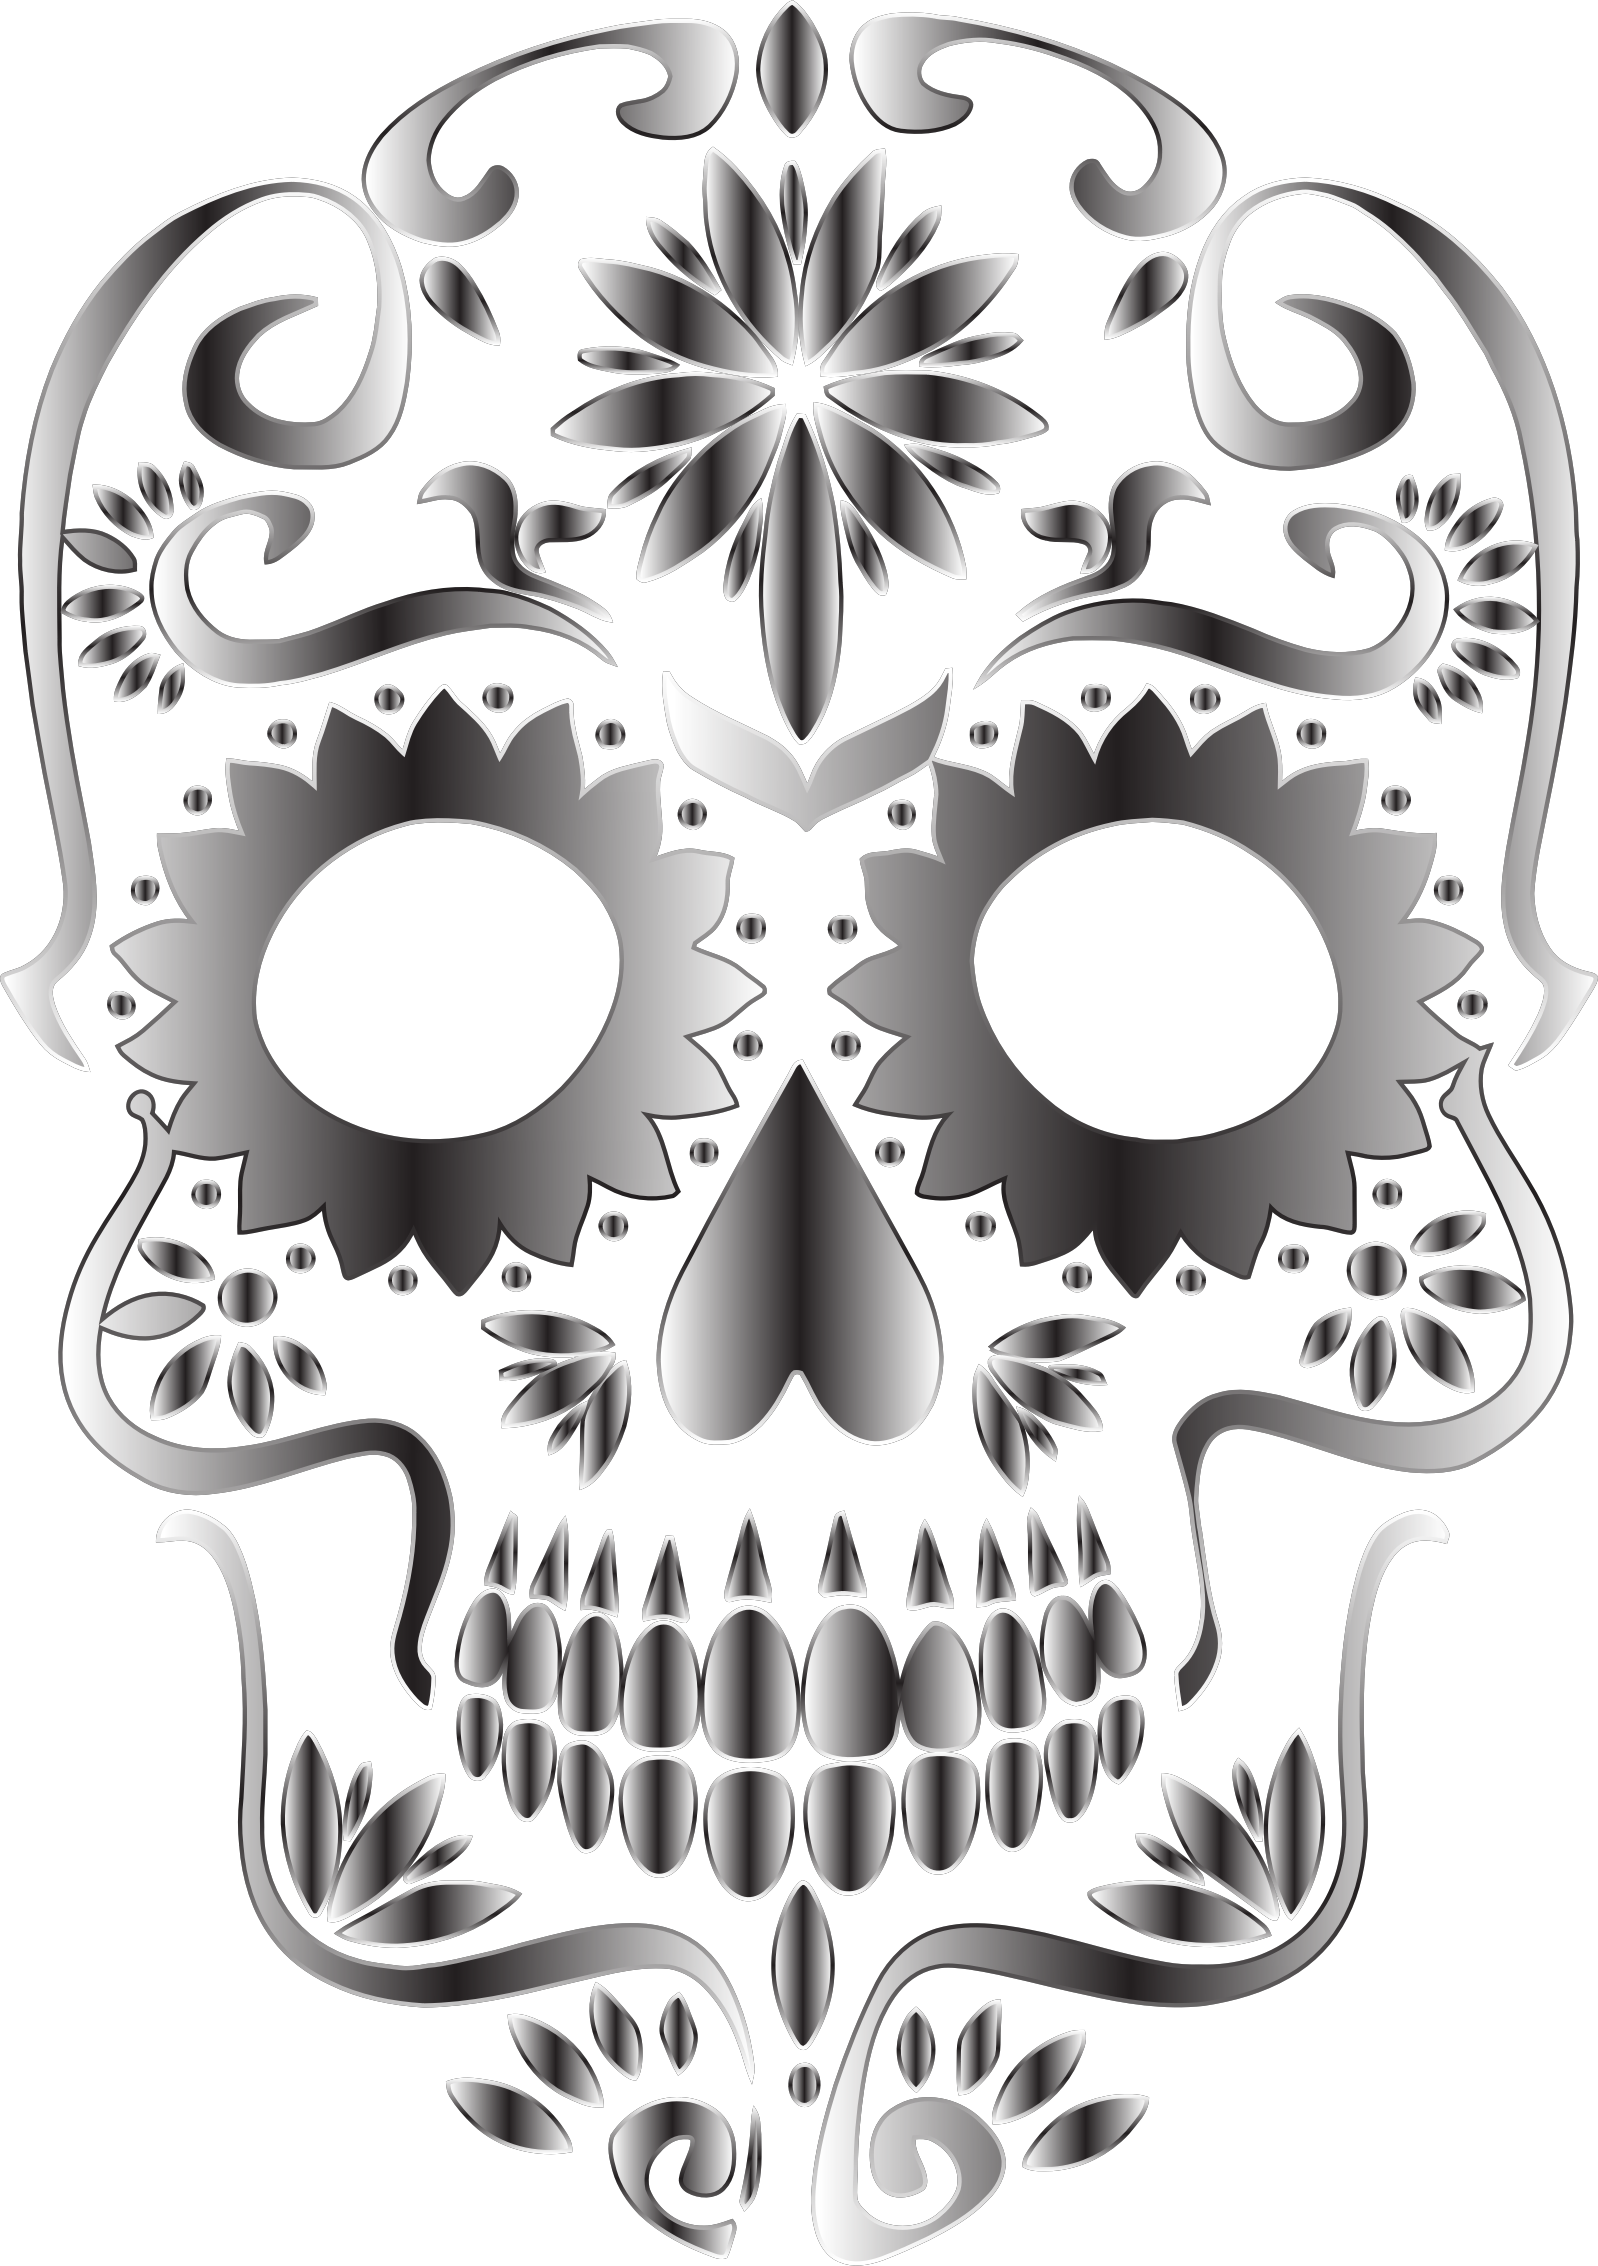 Halloween sugar skull clipart clipart free Monochrome Sugar Skull Silhouette No Background Icons PNG - Free PNG ... clipart free